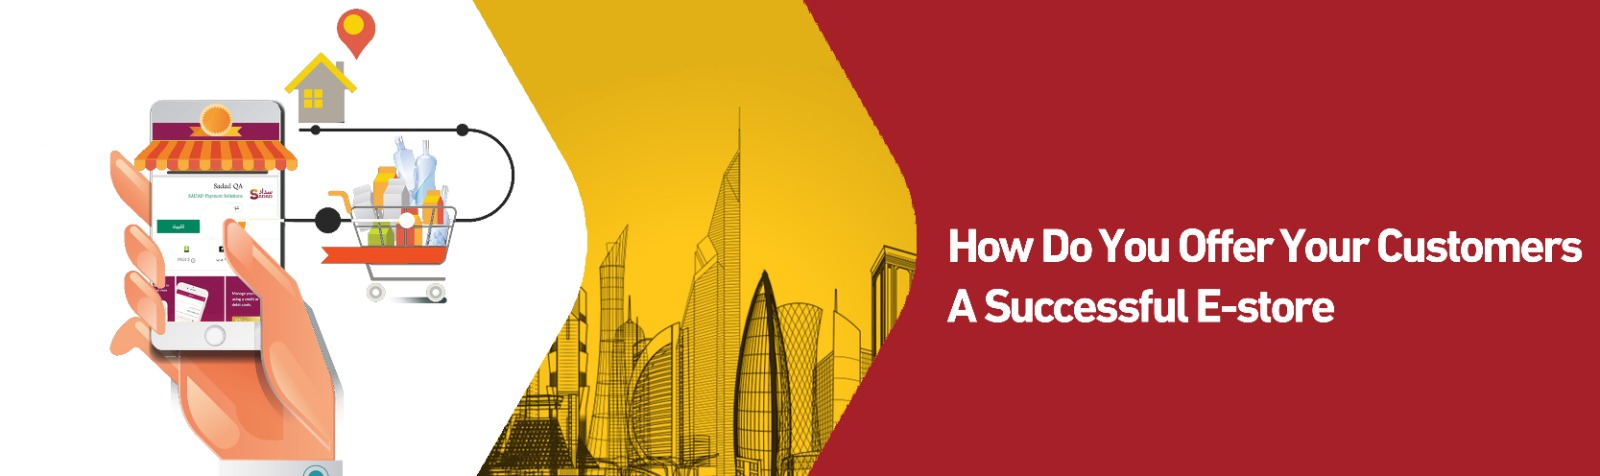 how do you offer your customer successful e-store | article banner | sadad.qa